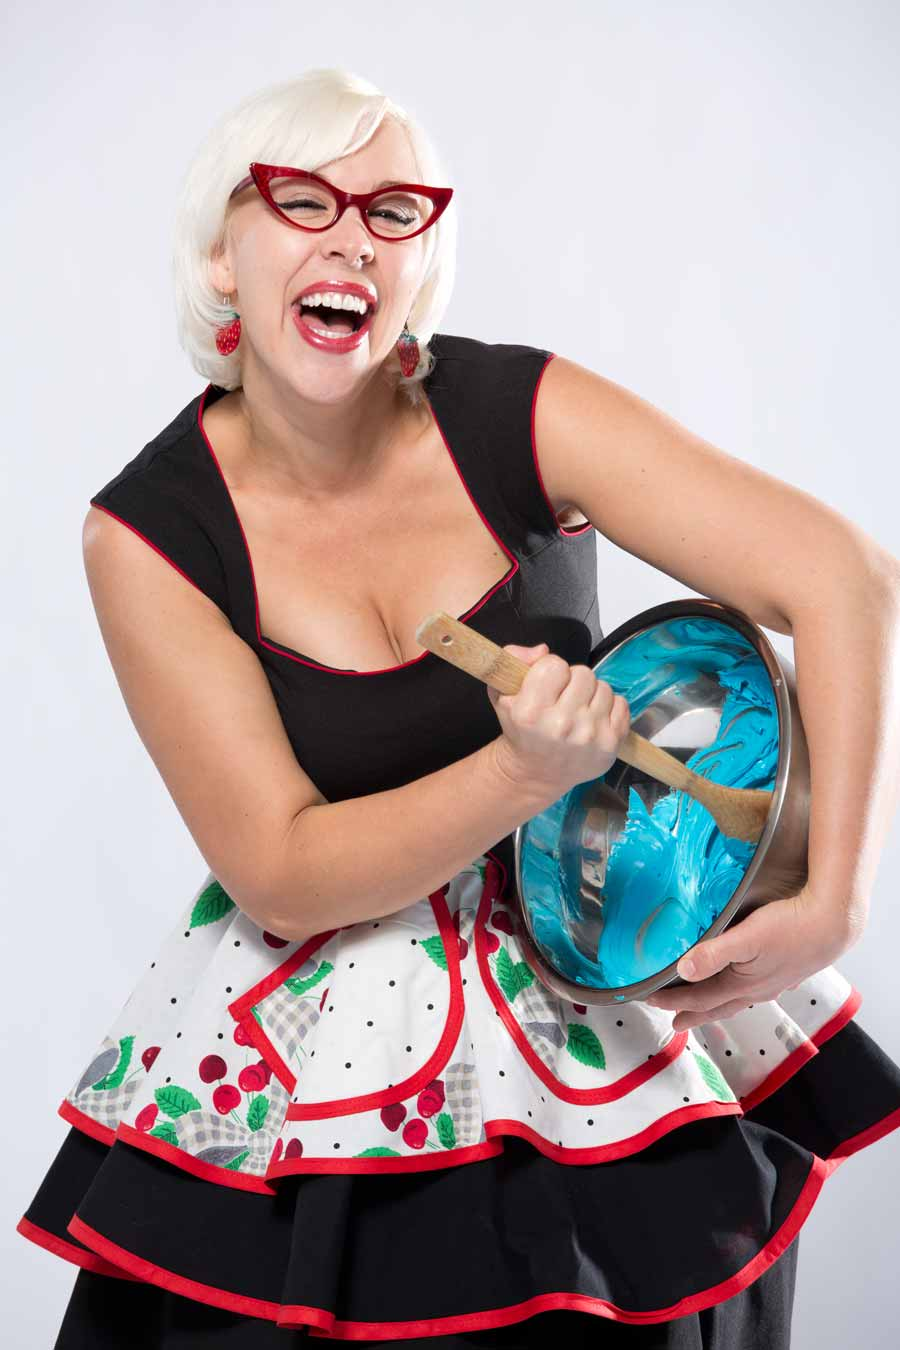 January 2014: Retro rad chef Emily Ellyn whipped it, whipped it good during one of our funnest cover shoots ever.